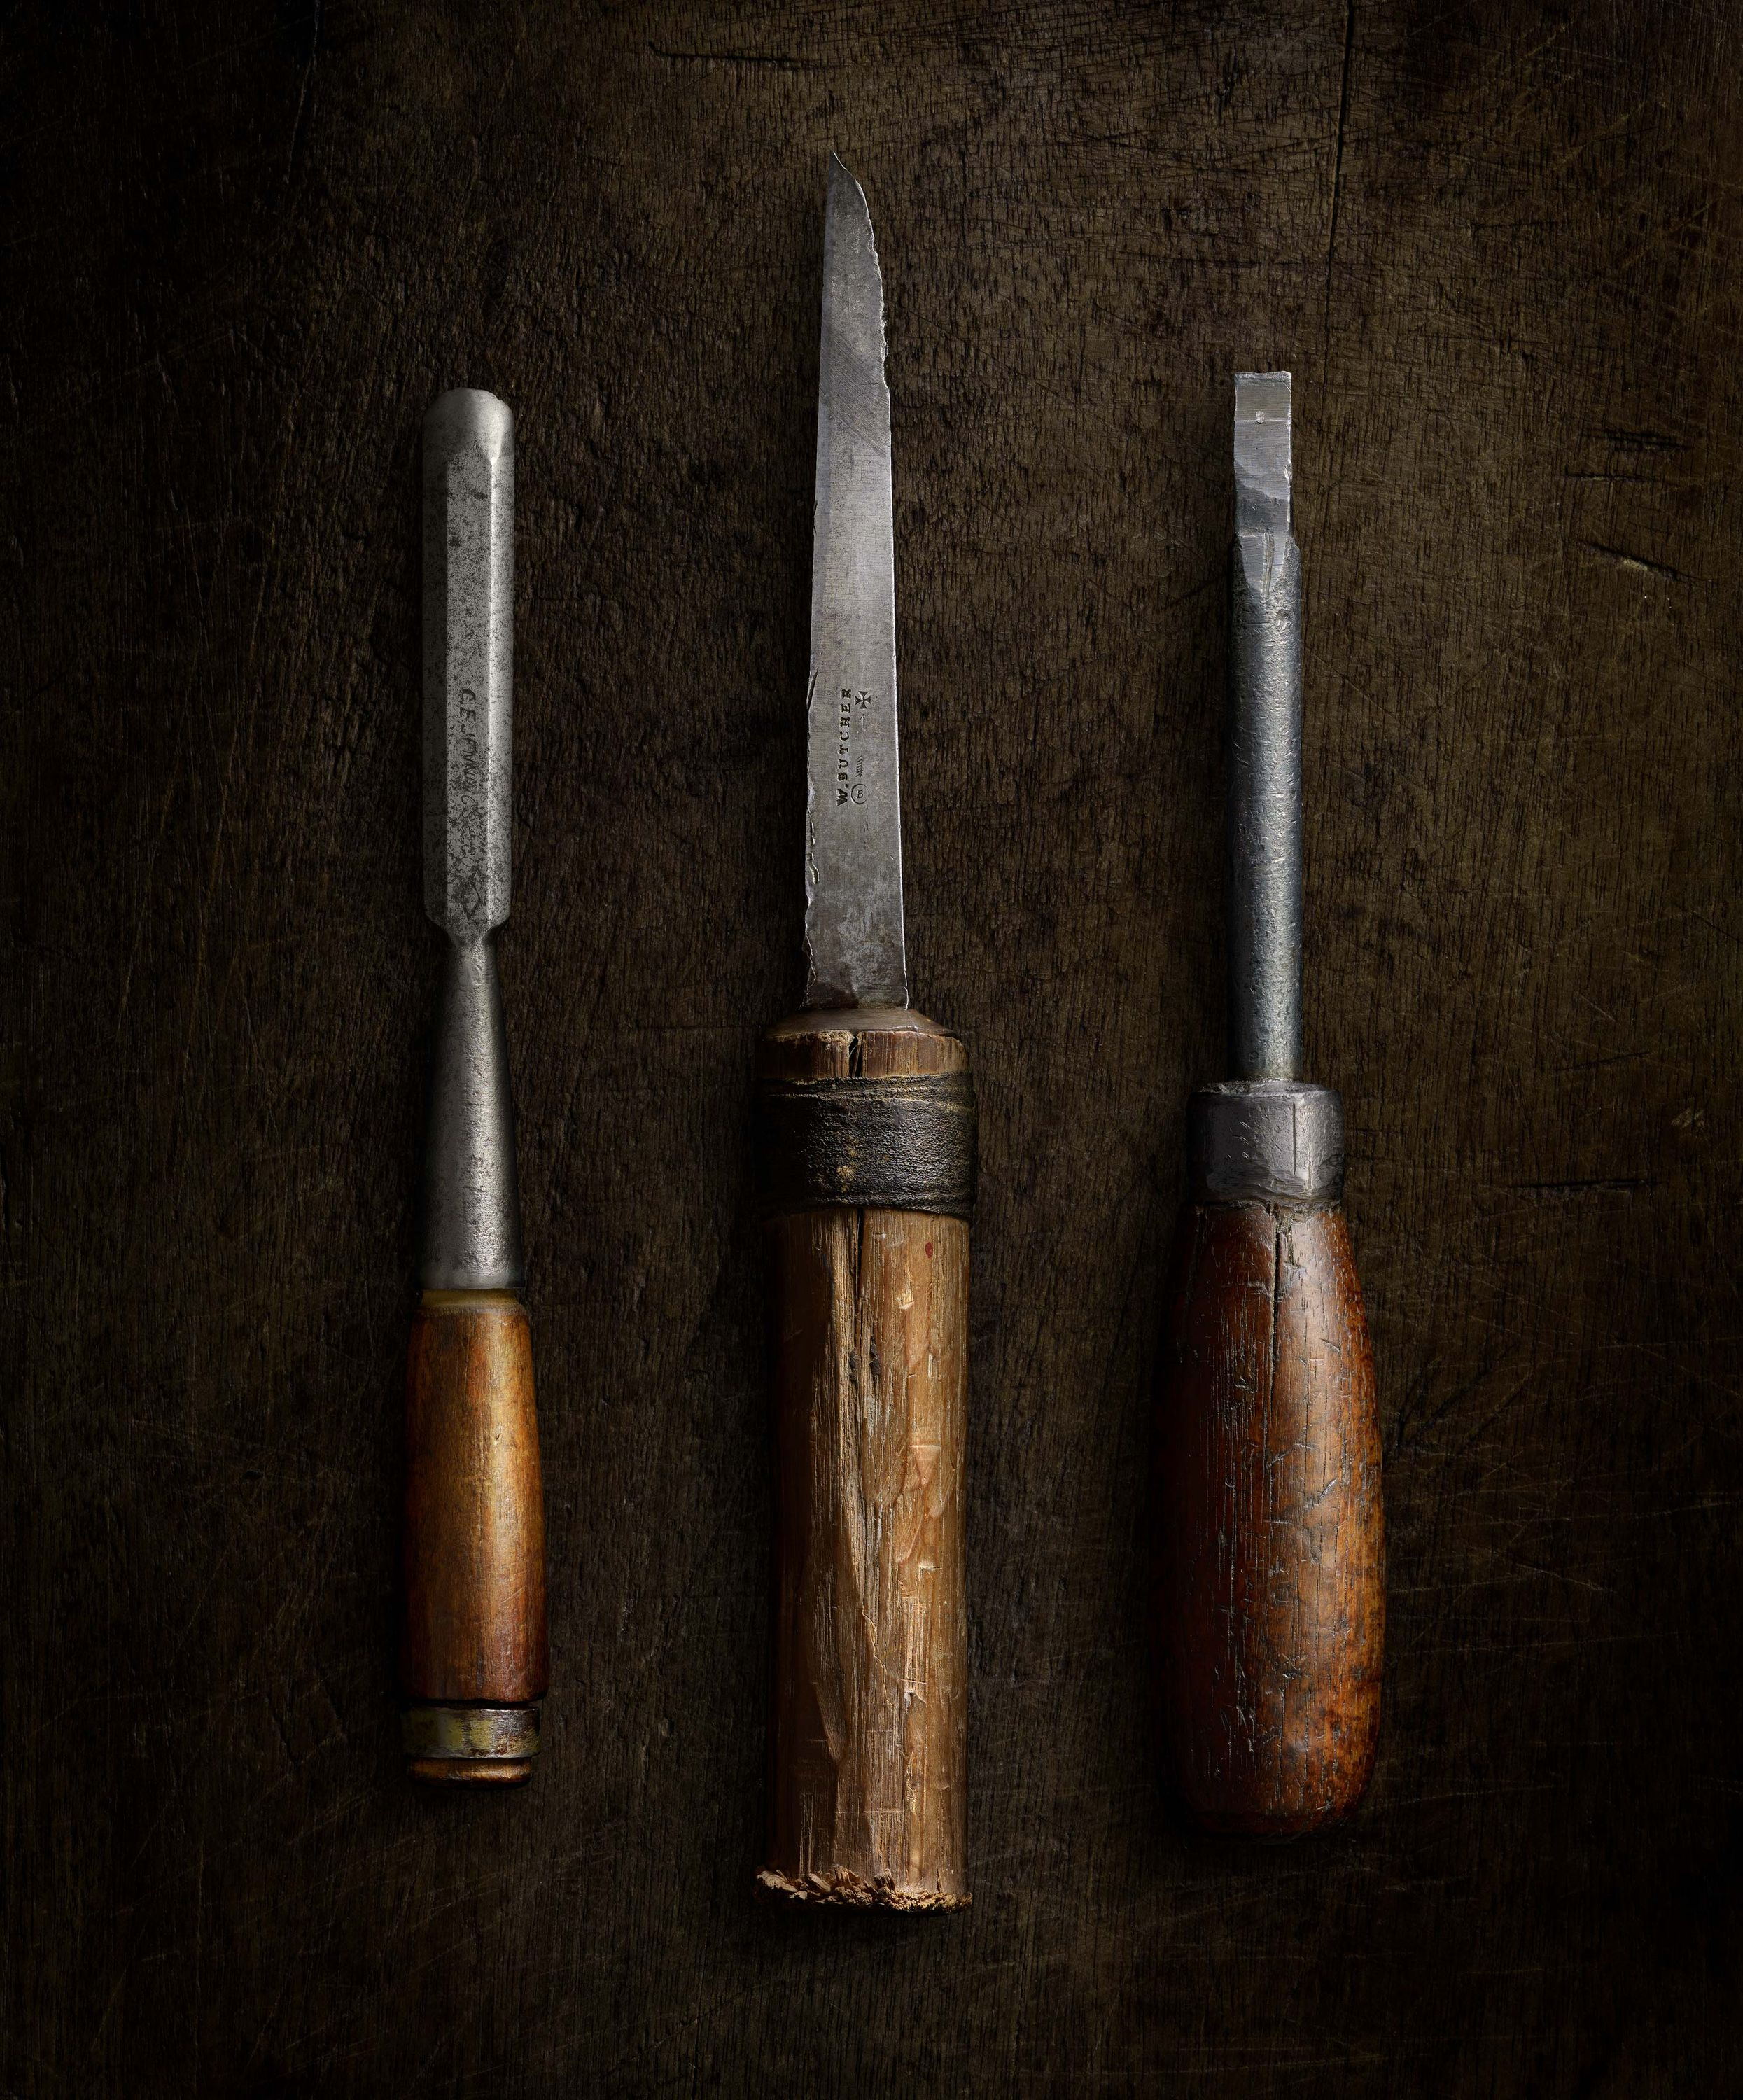 Chisels and Screwdriver